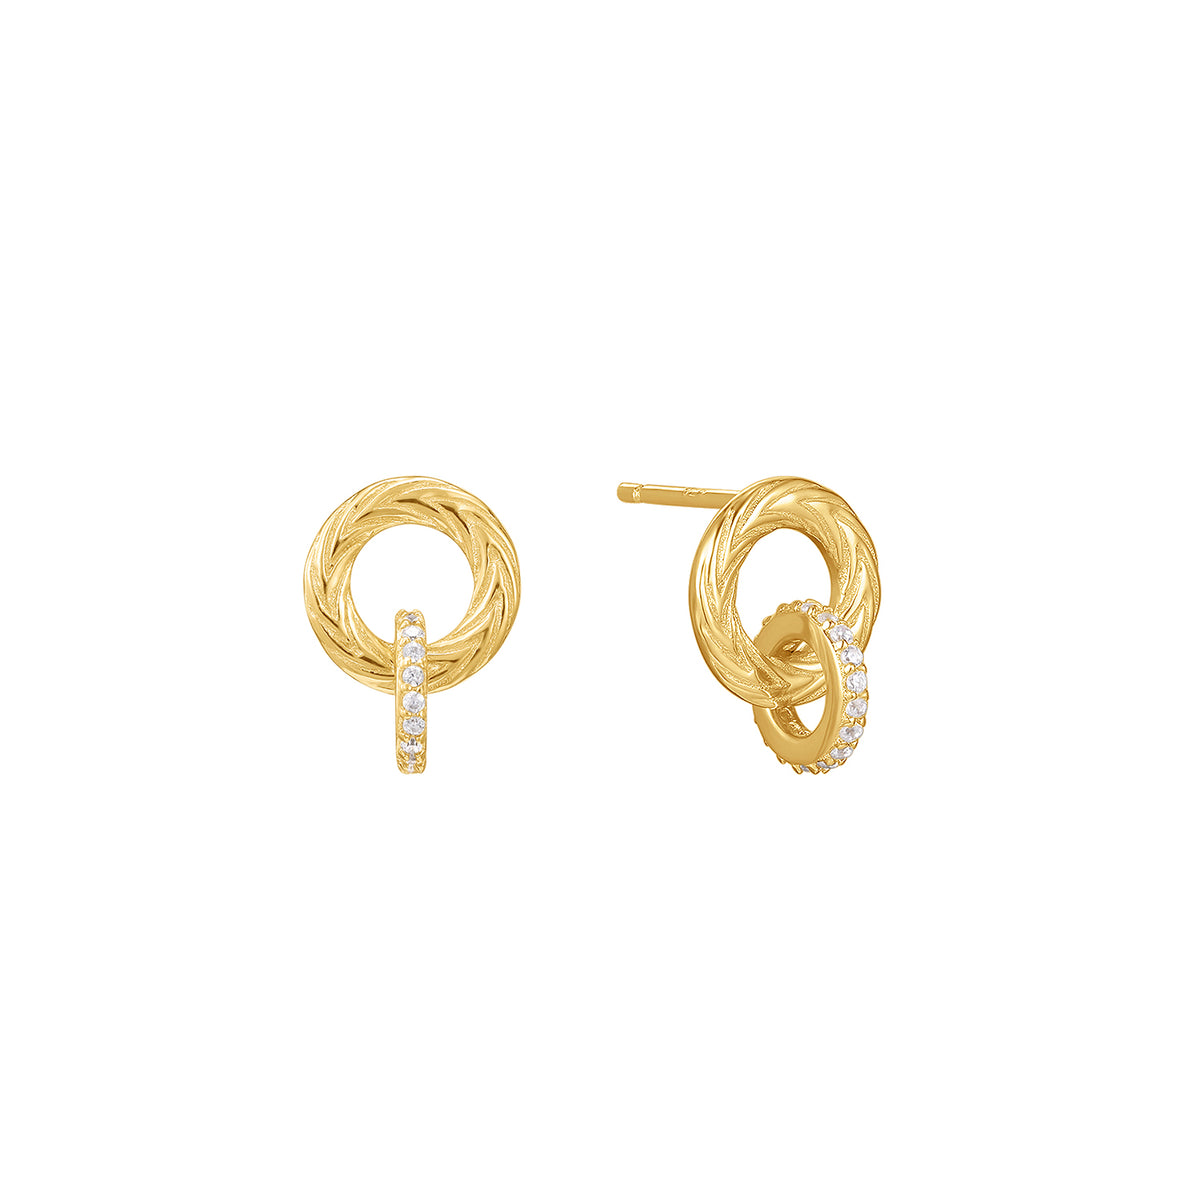 Egeria | Plumeria Earrings | White CZ | 14K Gold Plated 925 Silver